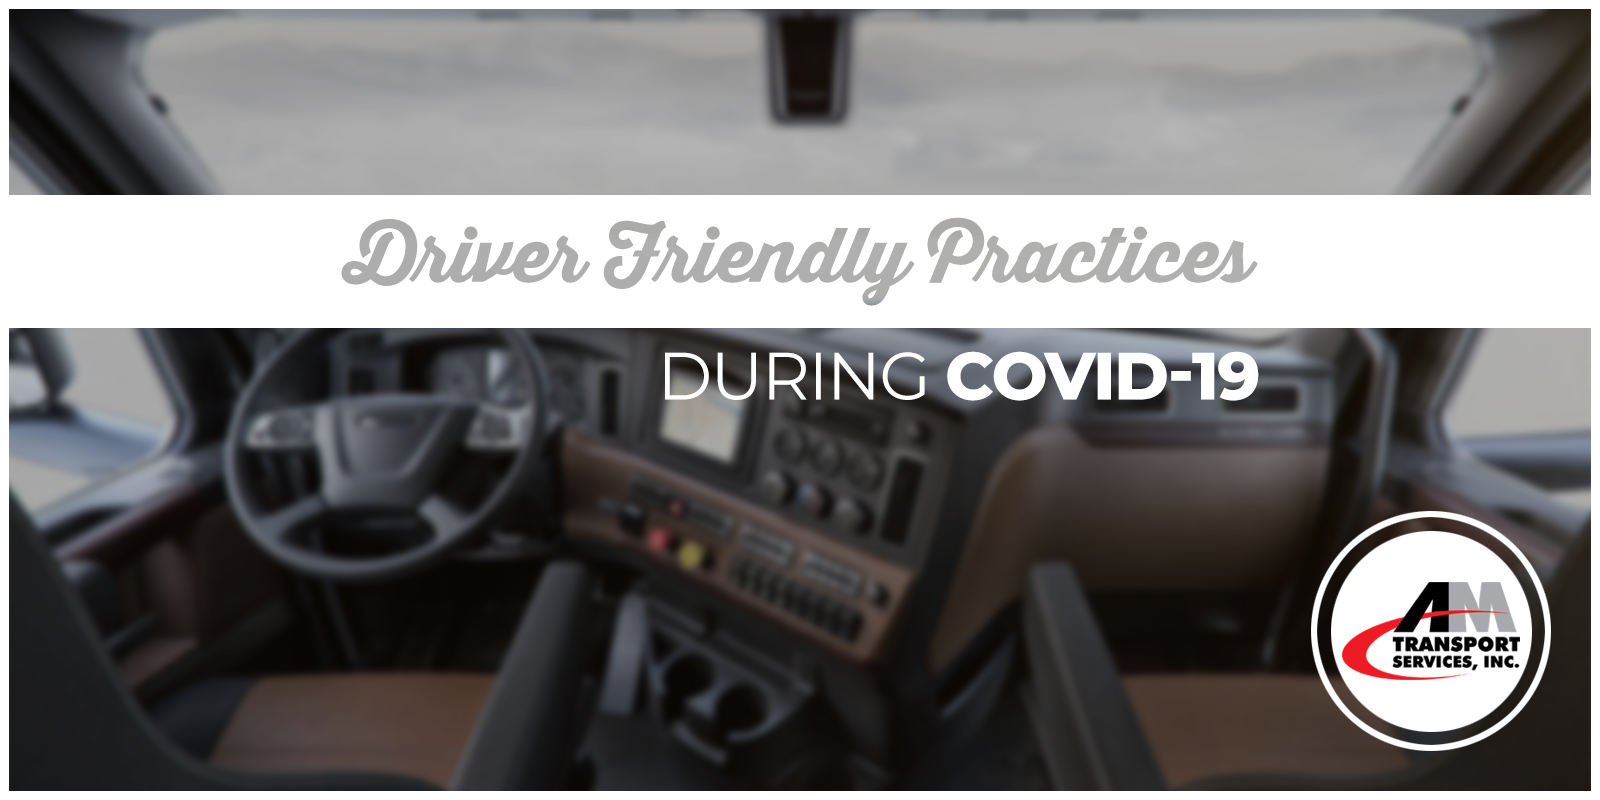 Inside of a truck with tagline: Driver Friendly Practices during COVID-19